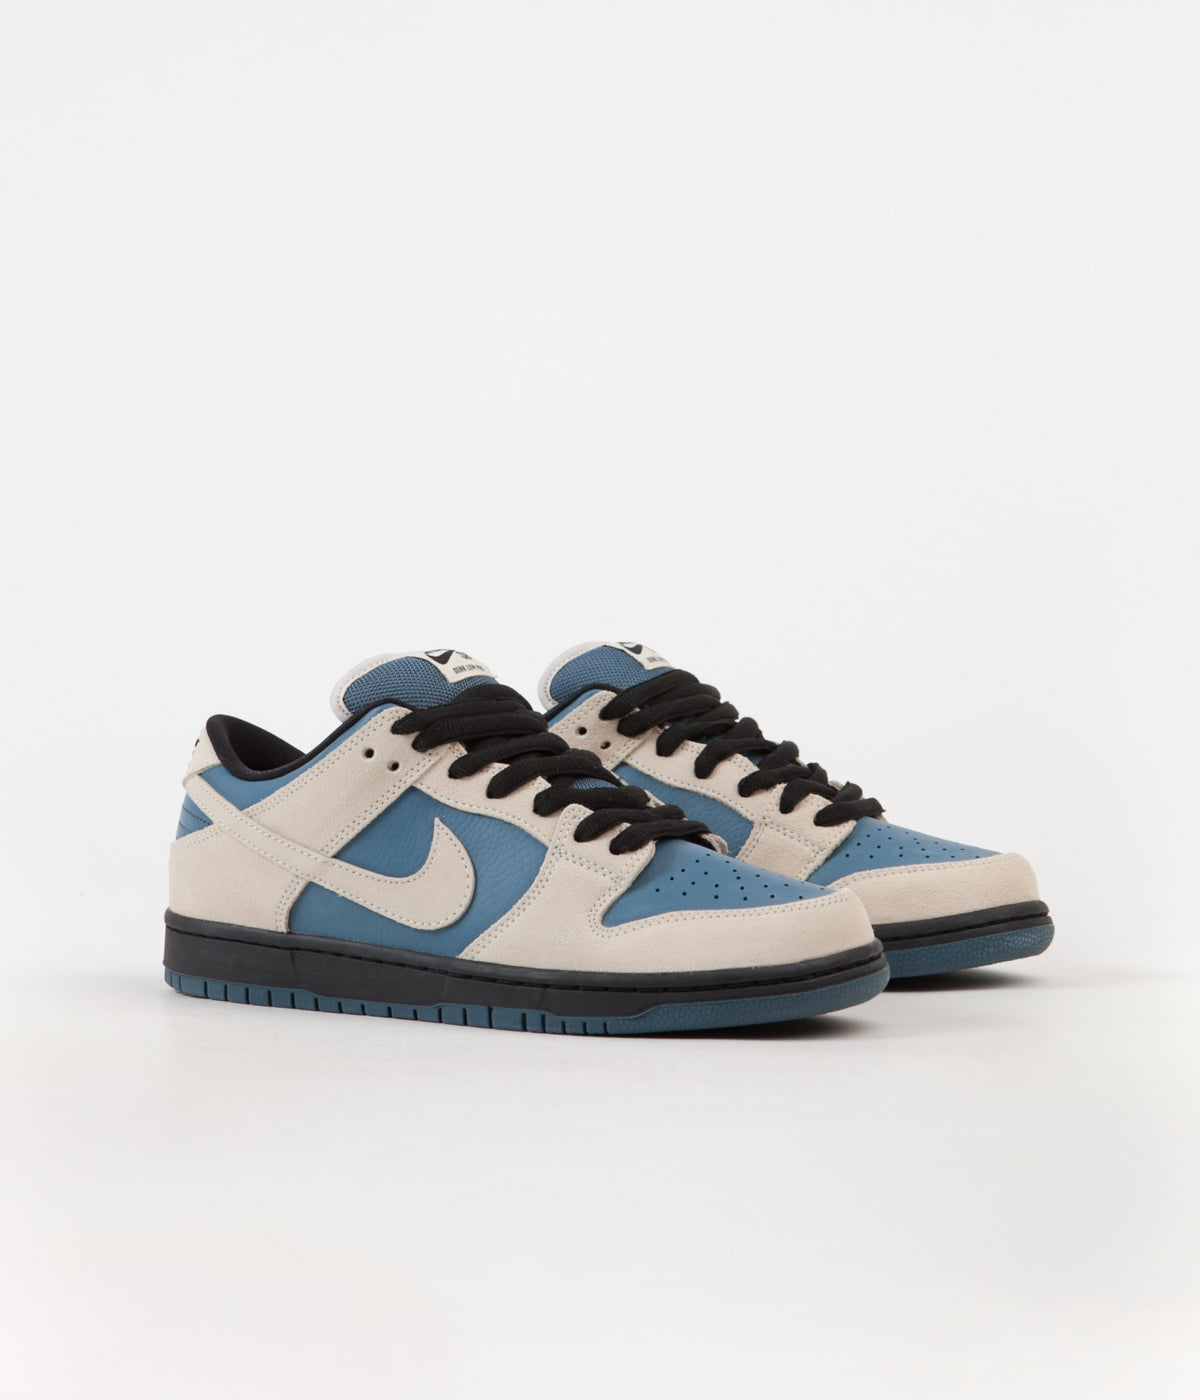 2e35781f3067 ... Nike SB Dunk Low Pro Shoes - Light Cream   Light Cream - Thunderstorm  ...